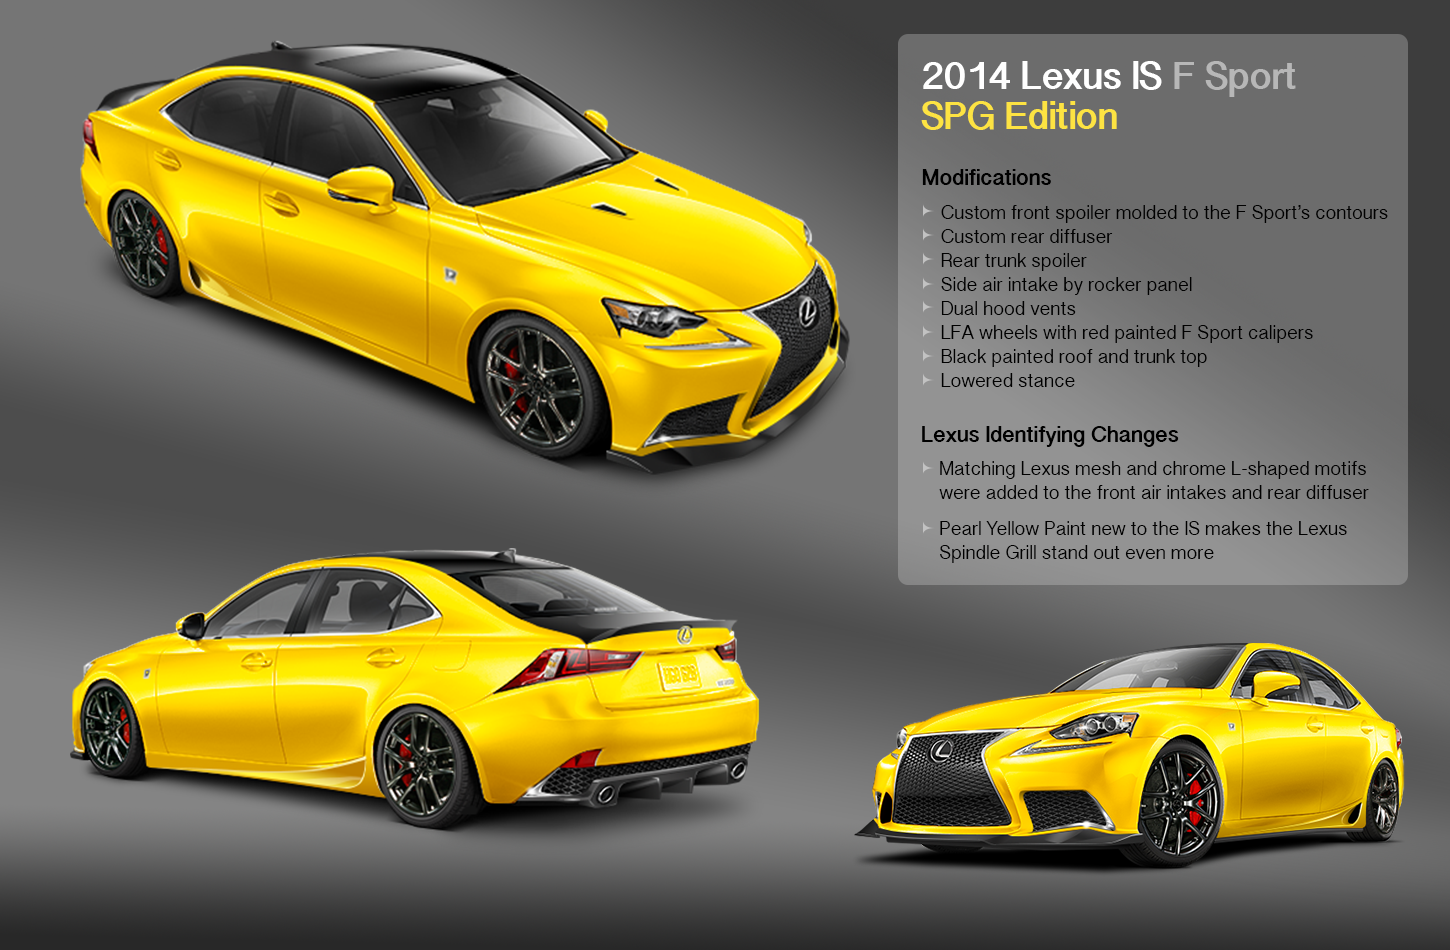 ... Lexus IS F Sport SPG Edition By Macross Fan